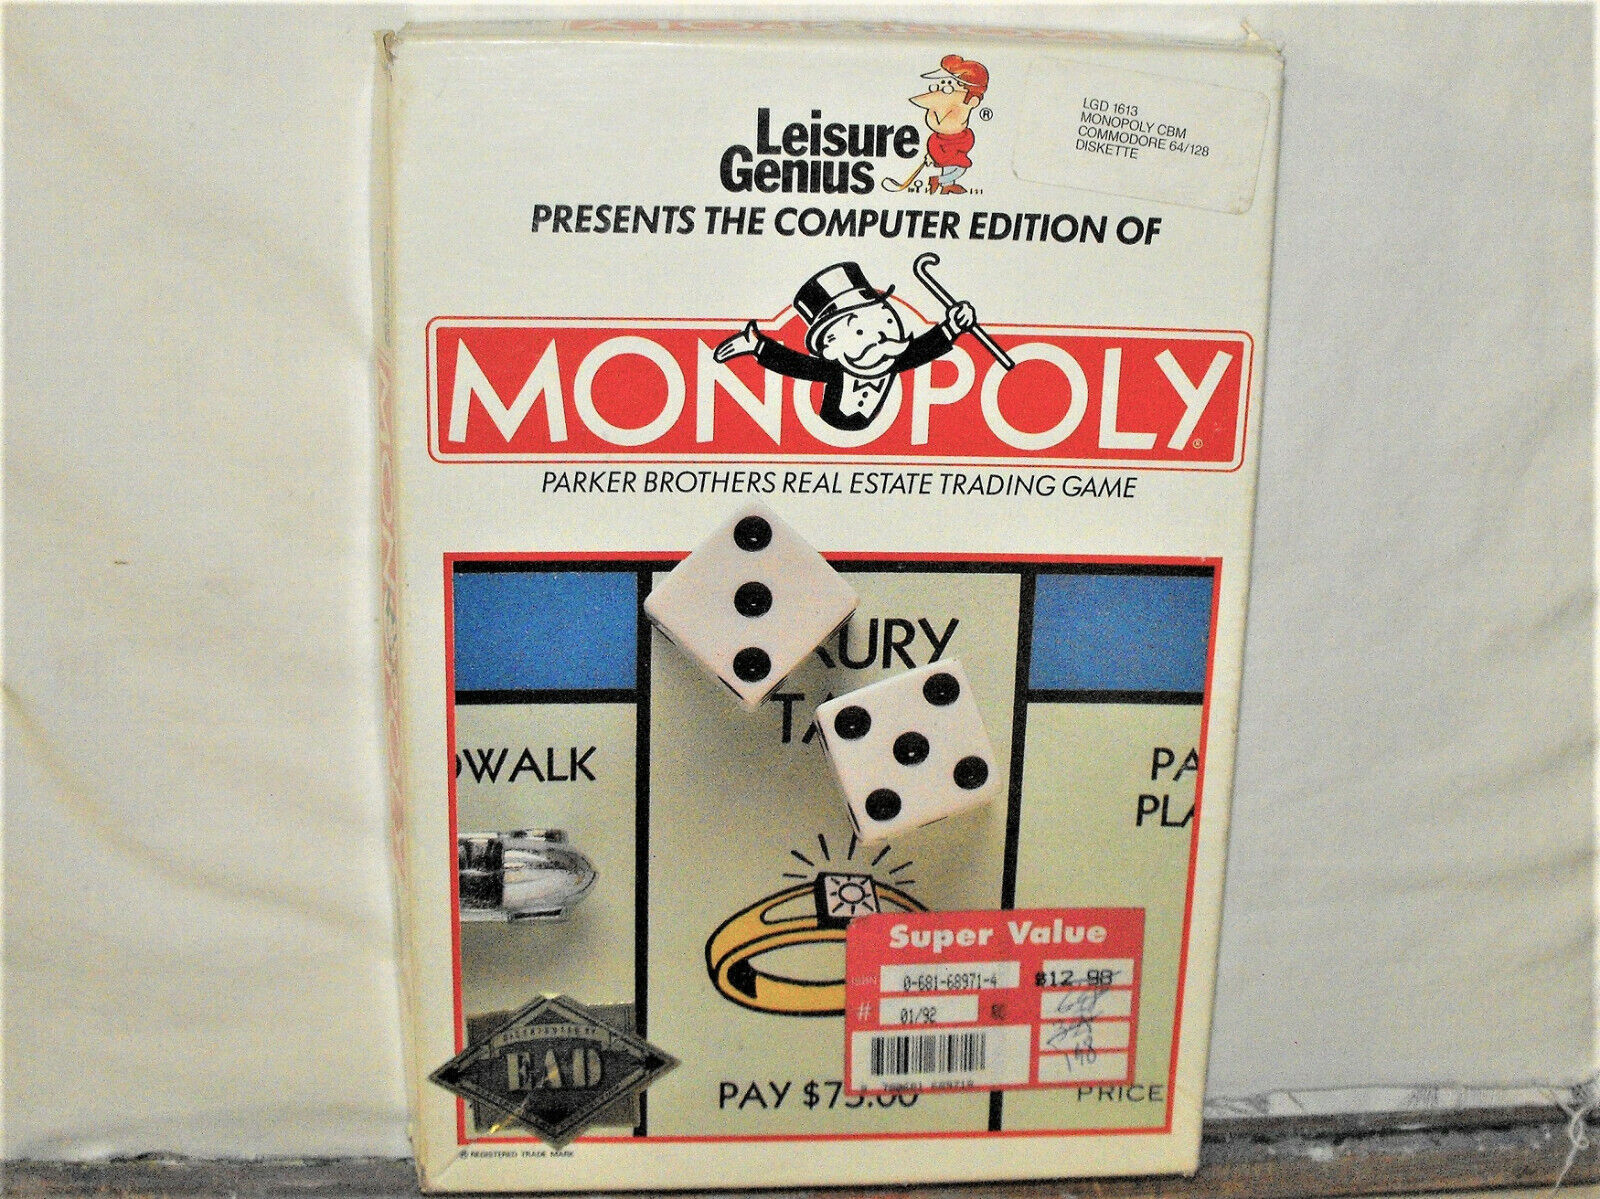 Computer Games - Commodore 64/128 Computer Game MONOPOLY Leisure Genius Software Disk Manual Box